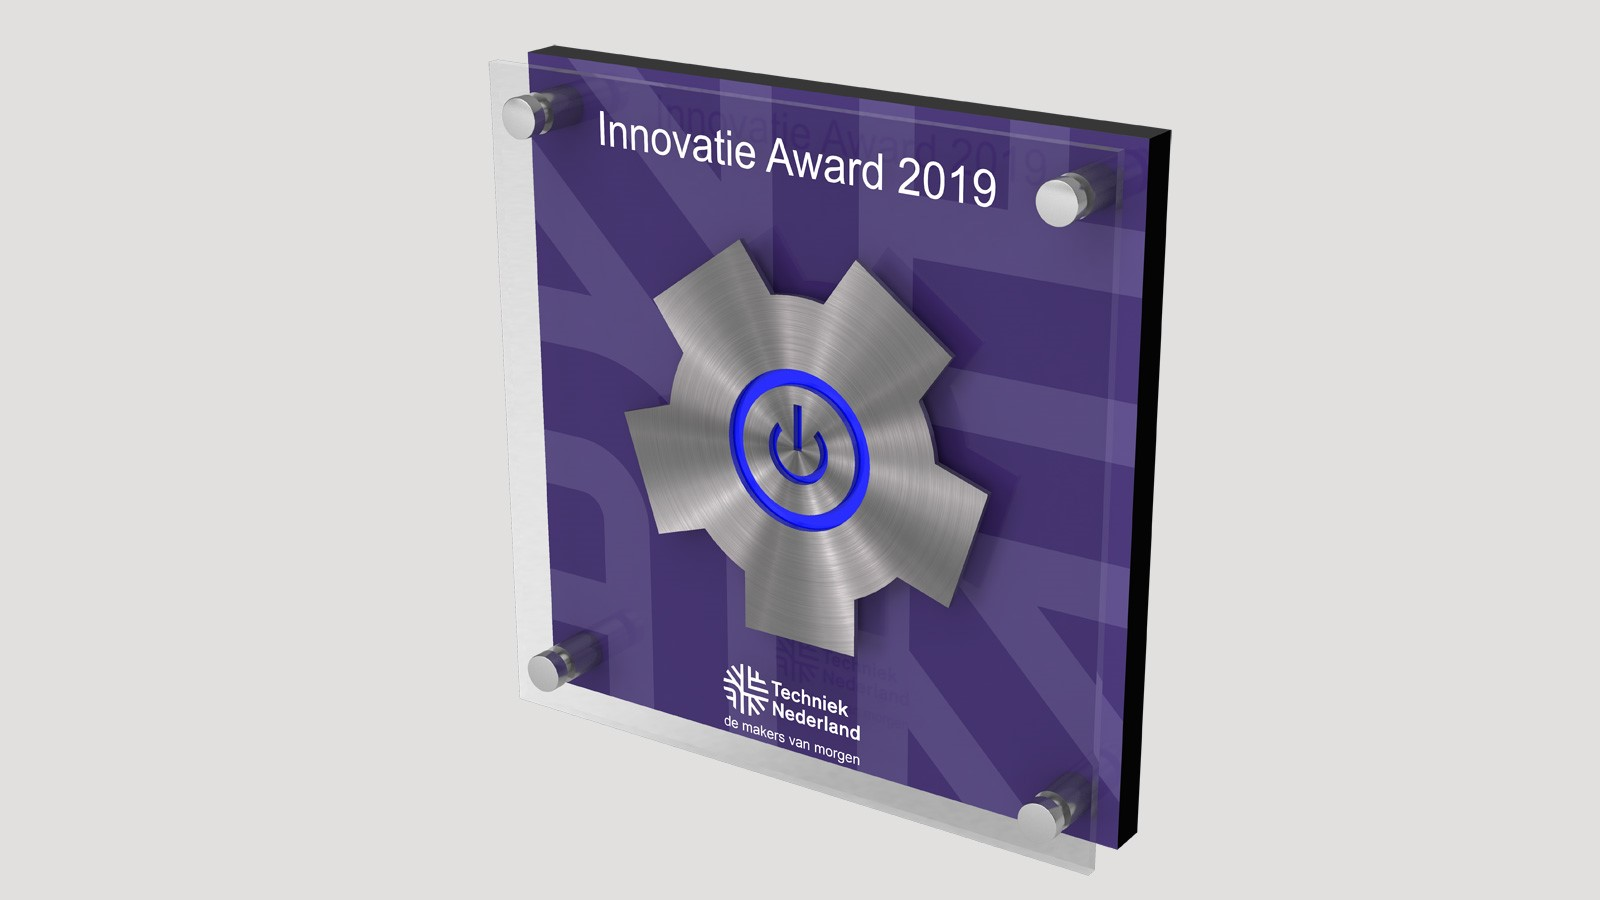 innovatie-award-2019-1600